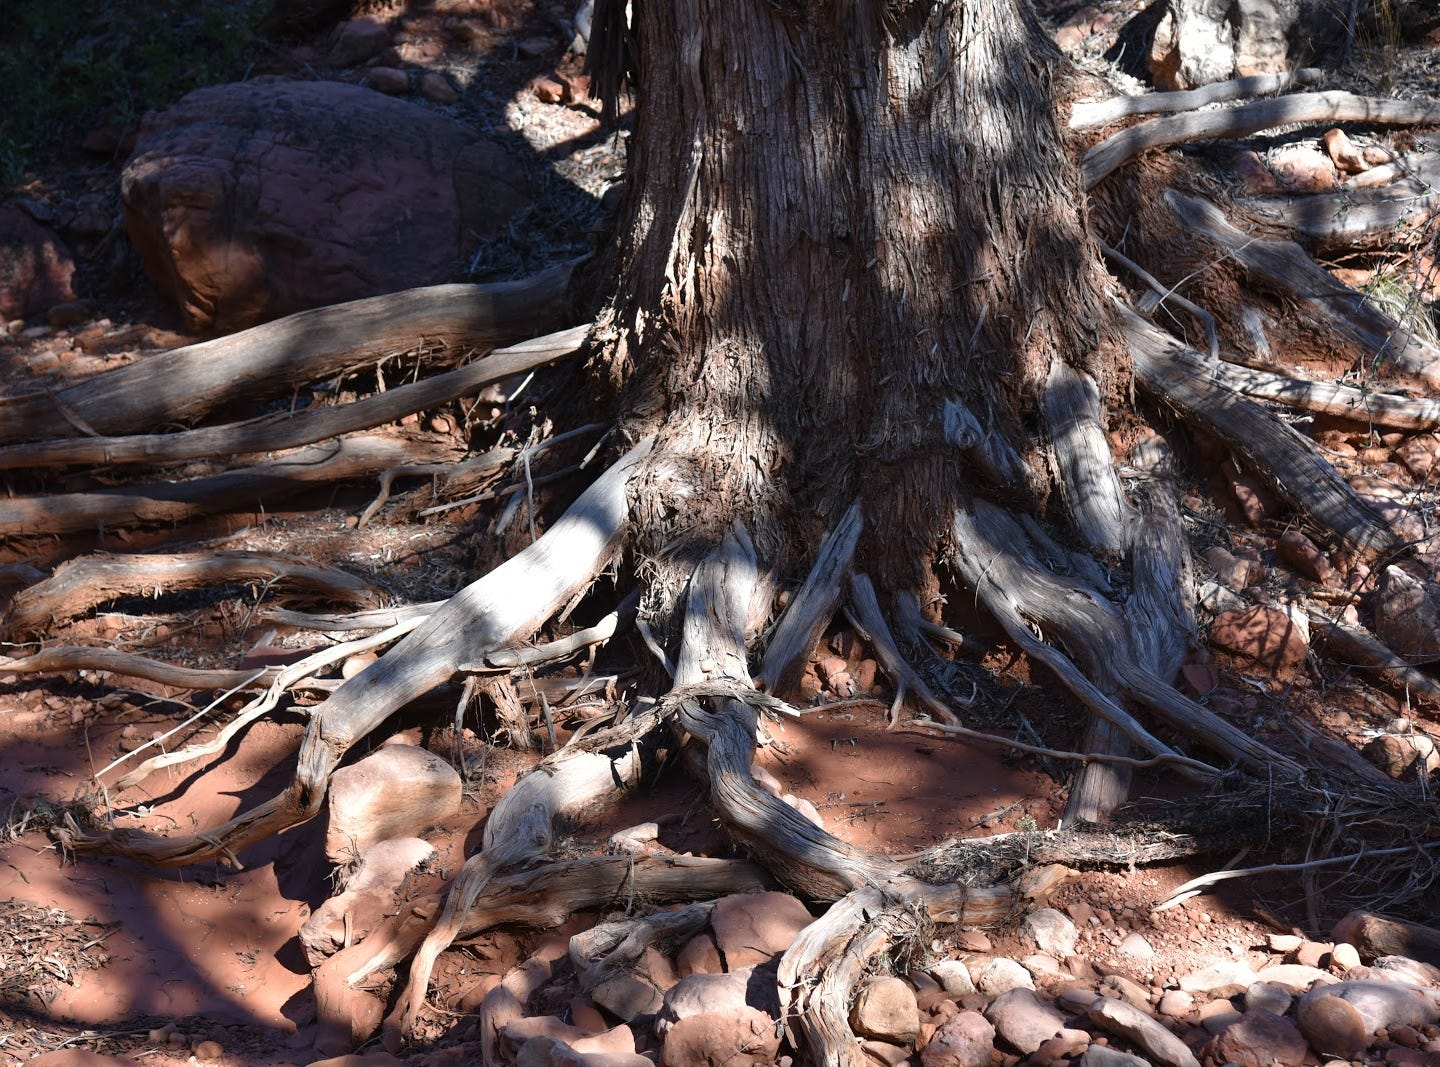 Artful exposed roots along the Easy Breezy Trail.